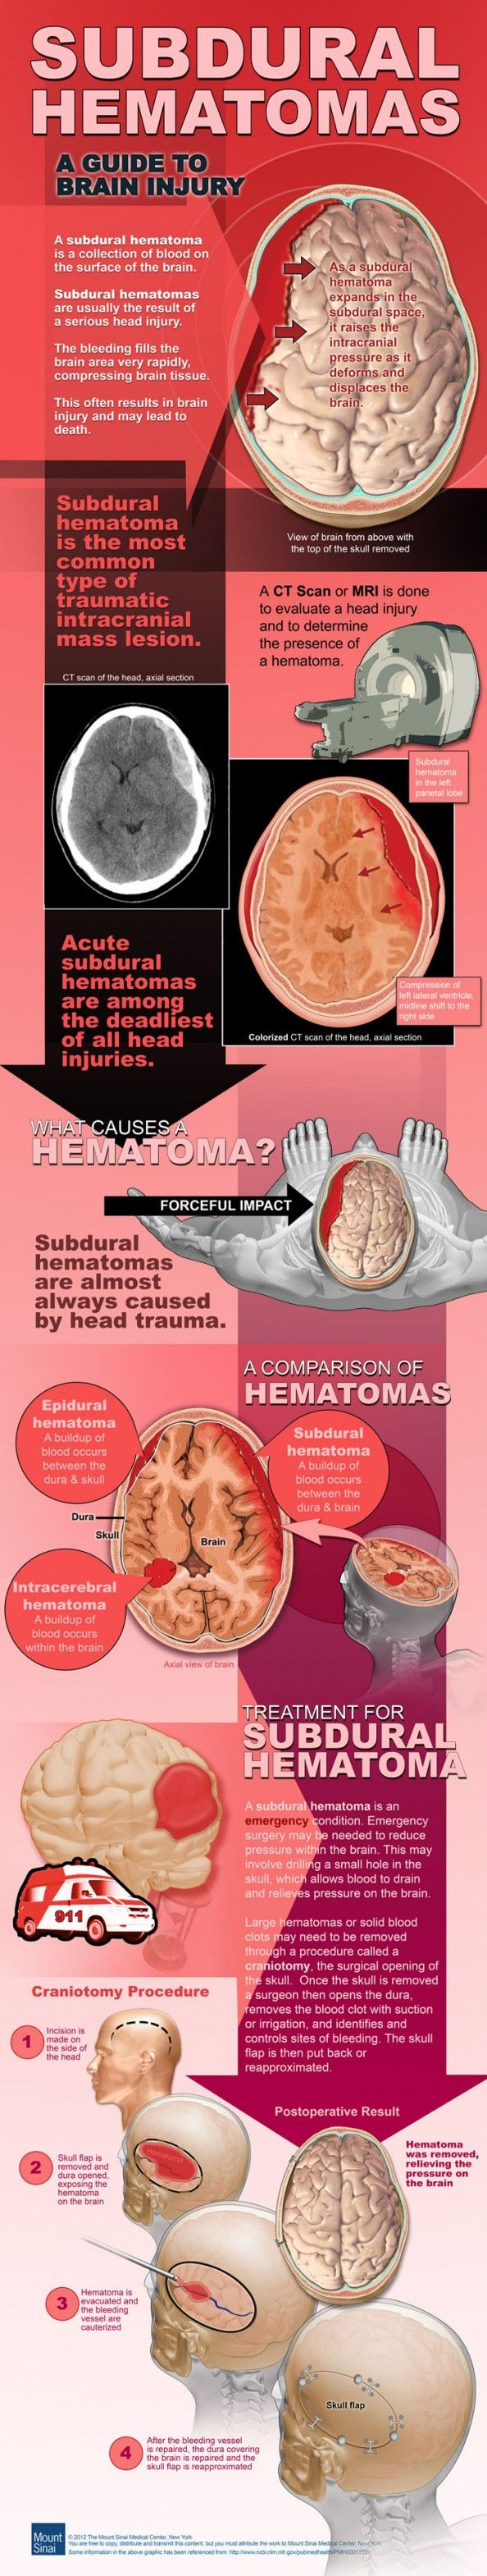 Subdural hemotoma - good graphic